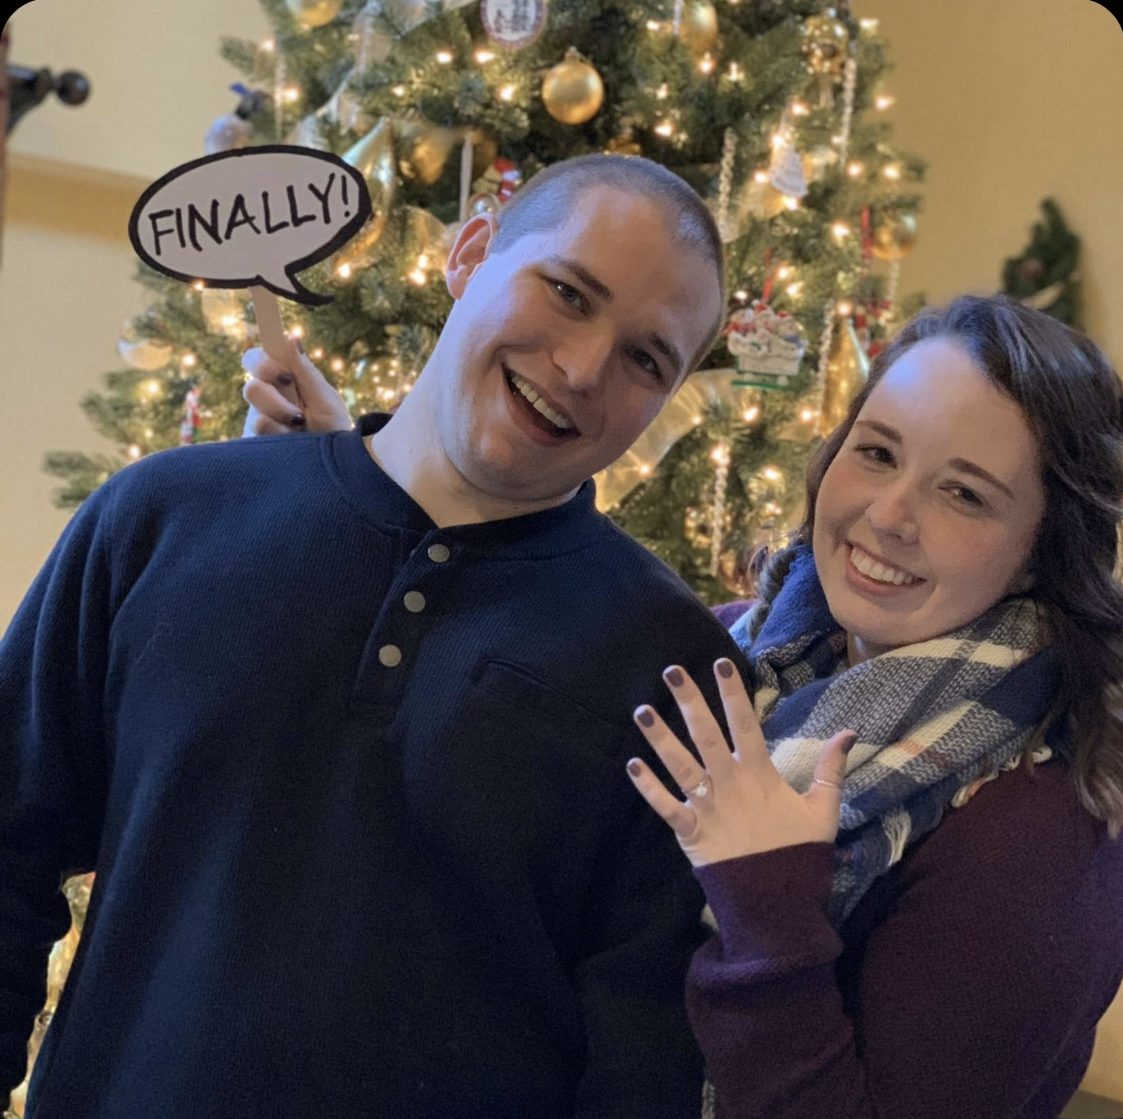 Proposal Ideas At my family Christmas party